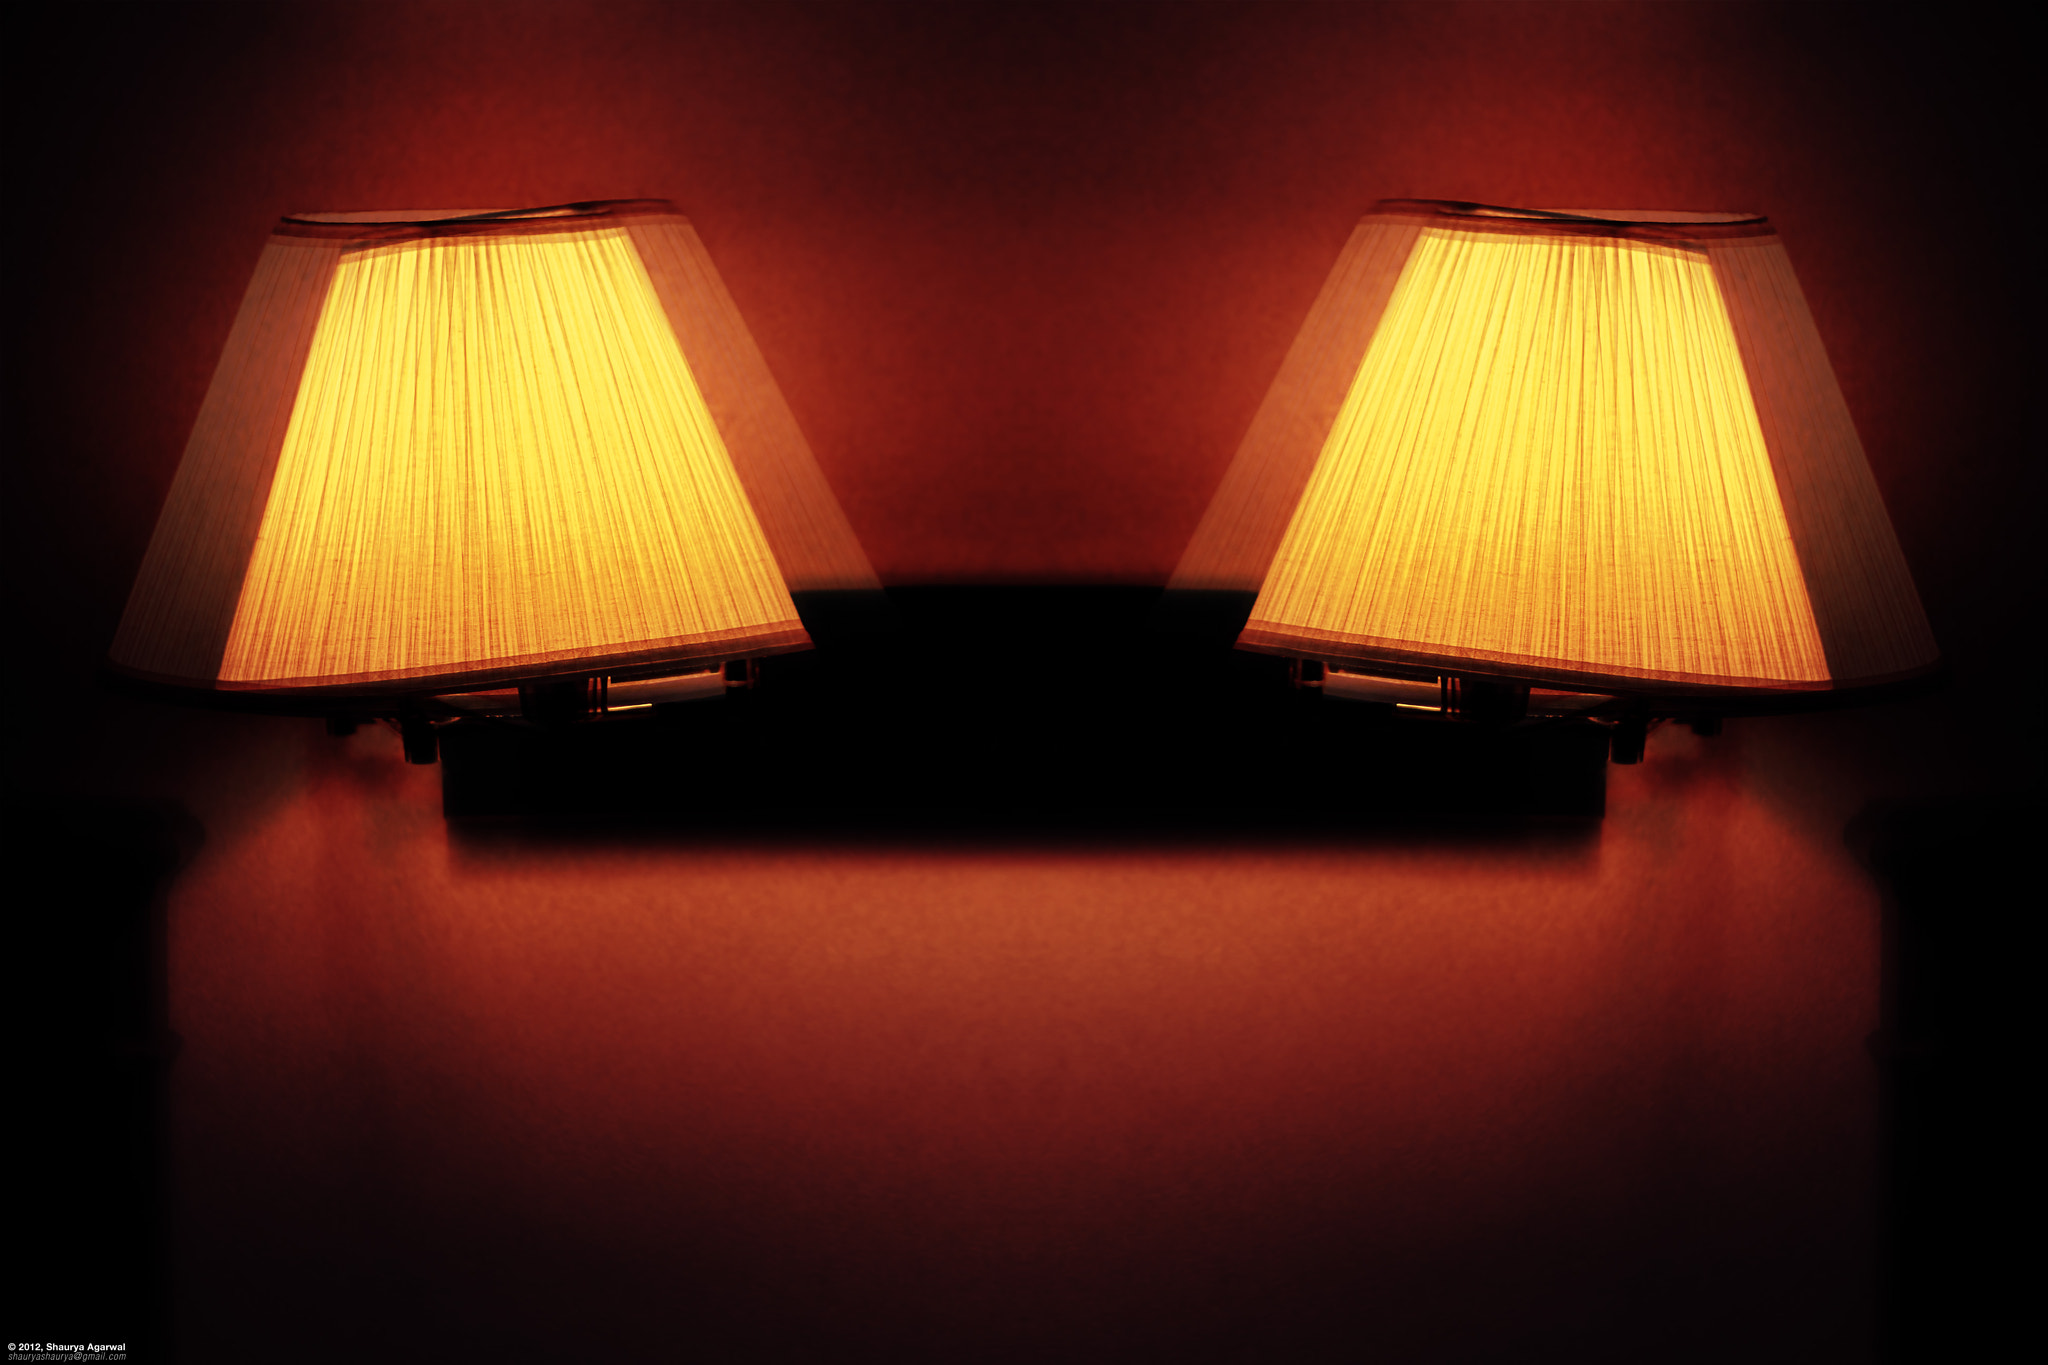 Photograph Lamps by Shaurya Agarwal on 500px